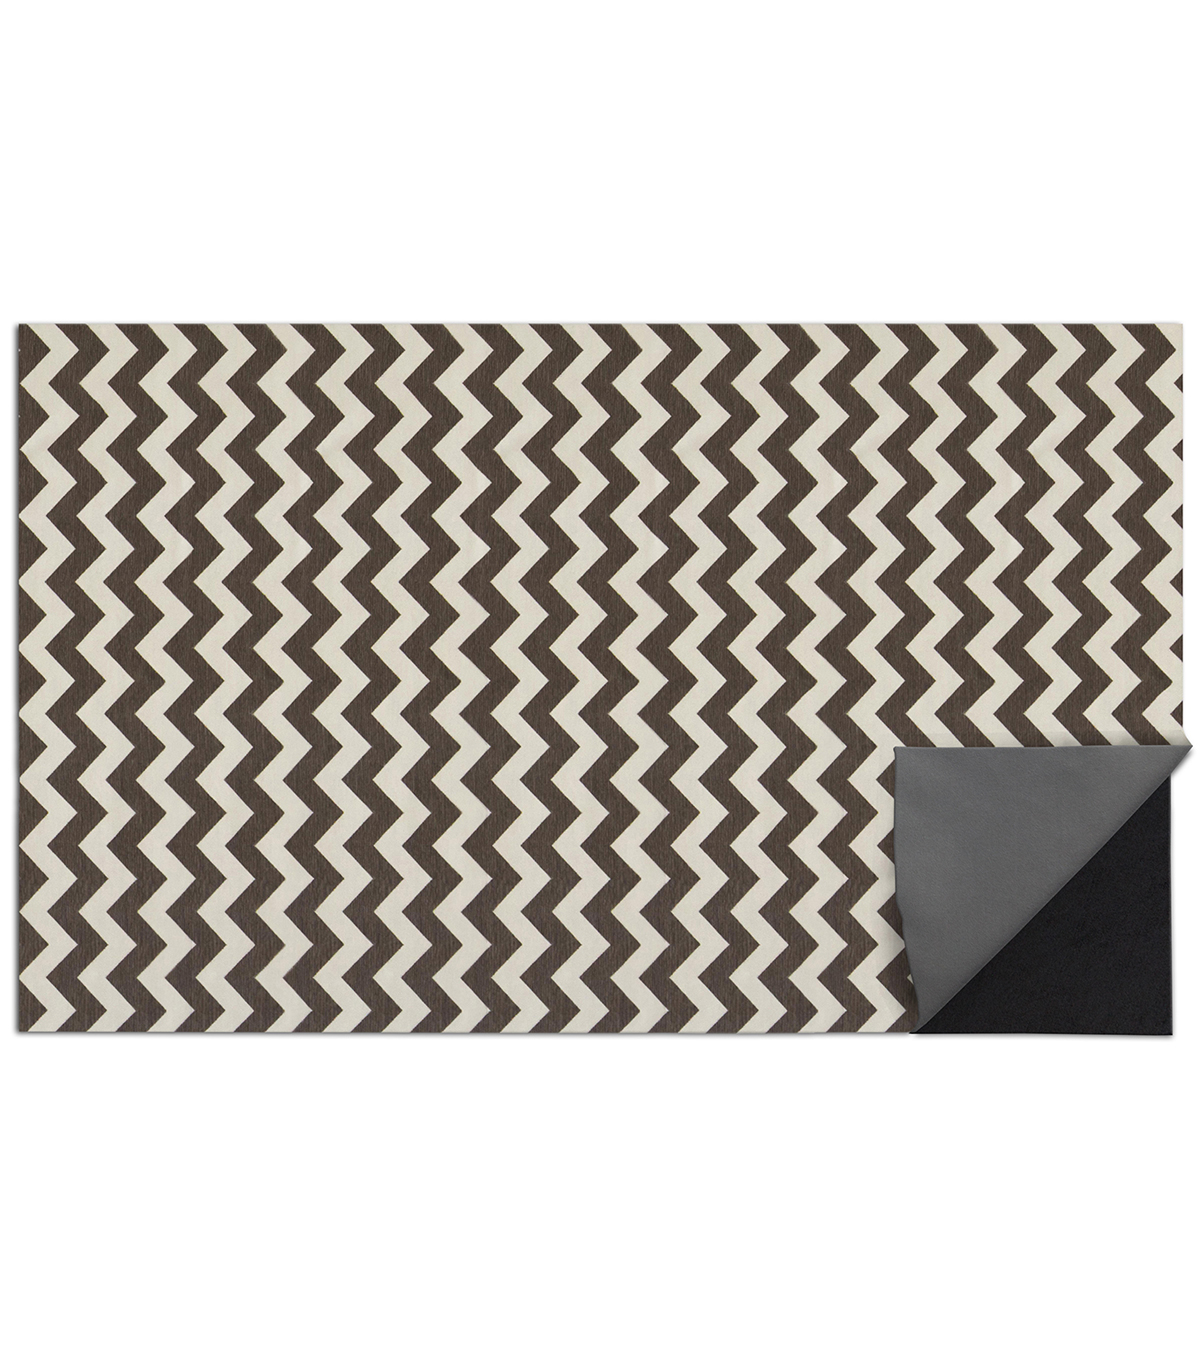 5x7\u0027 Ruggable 2pc Washable Rug System-Chevron Black  & White